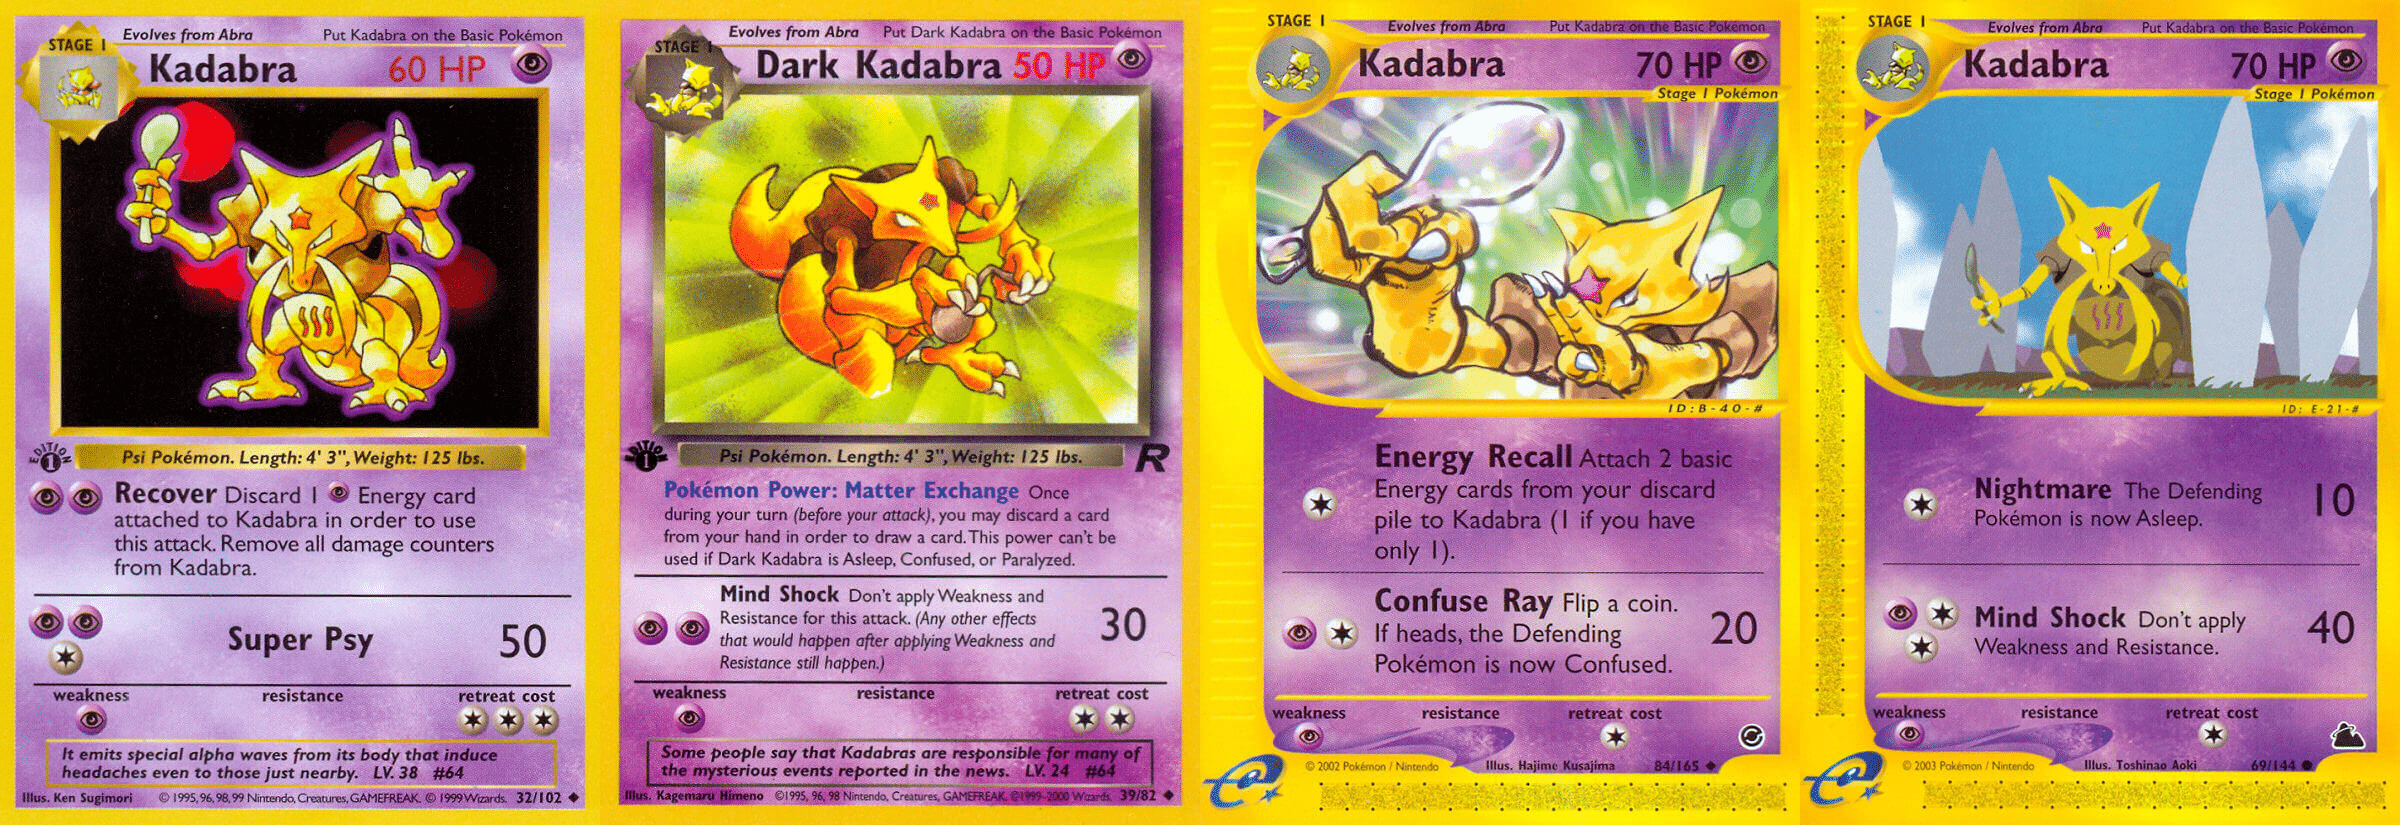 Four versions of Kadabra from the Pokémon Trading Card Game